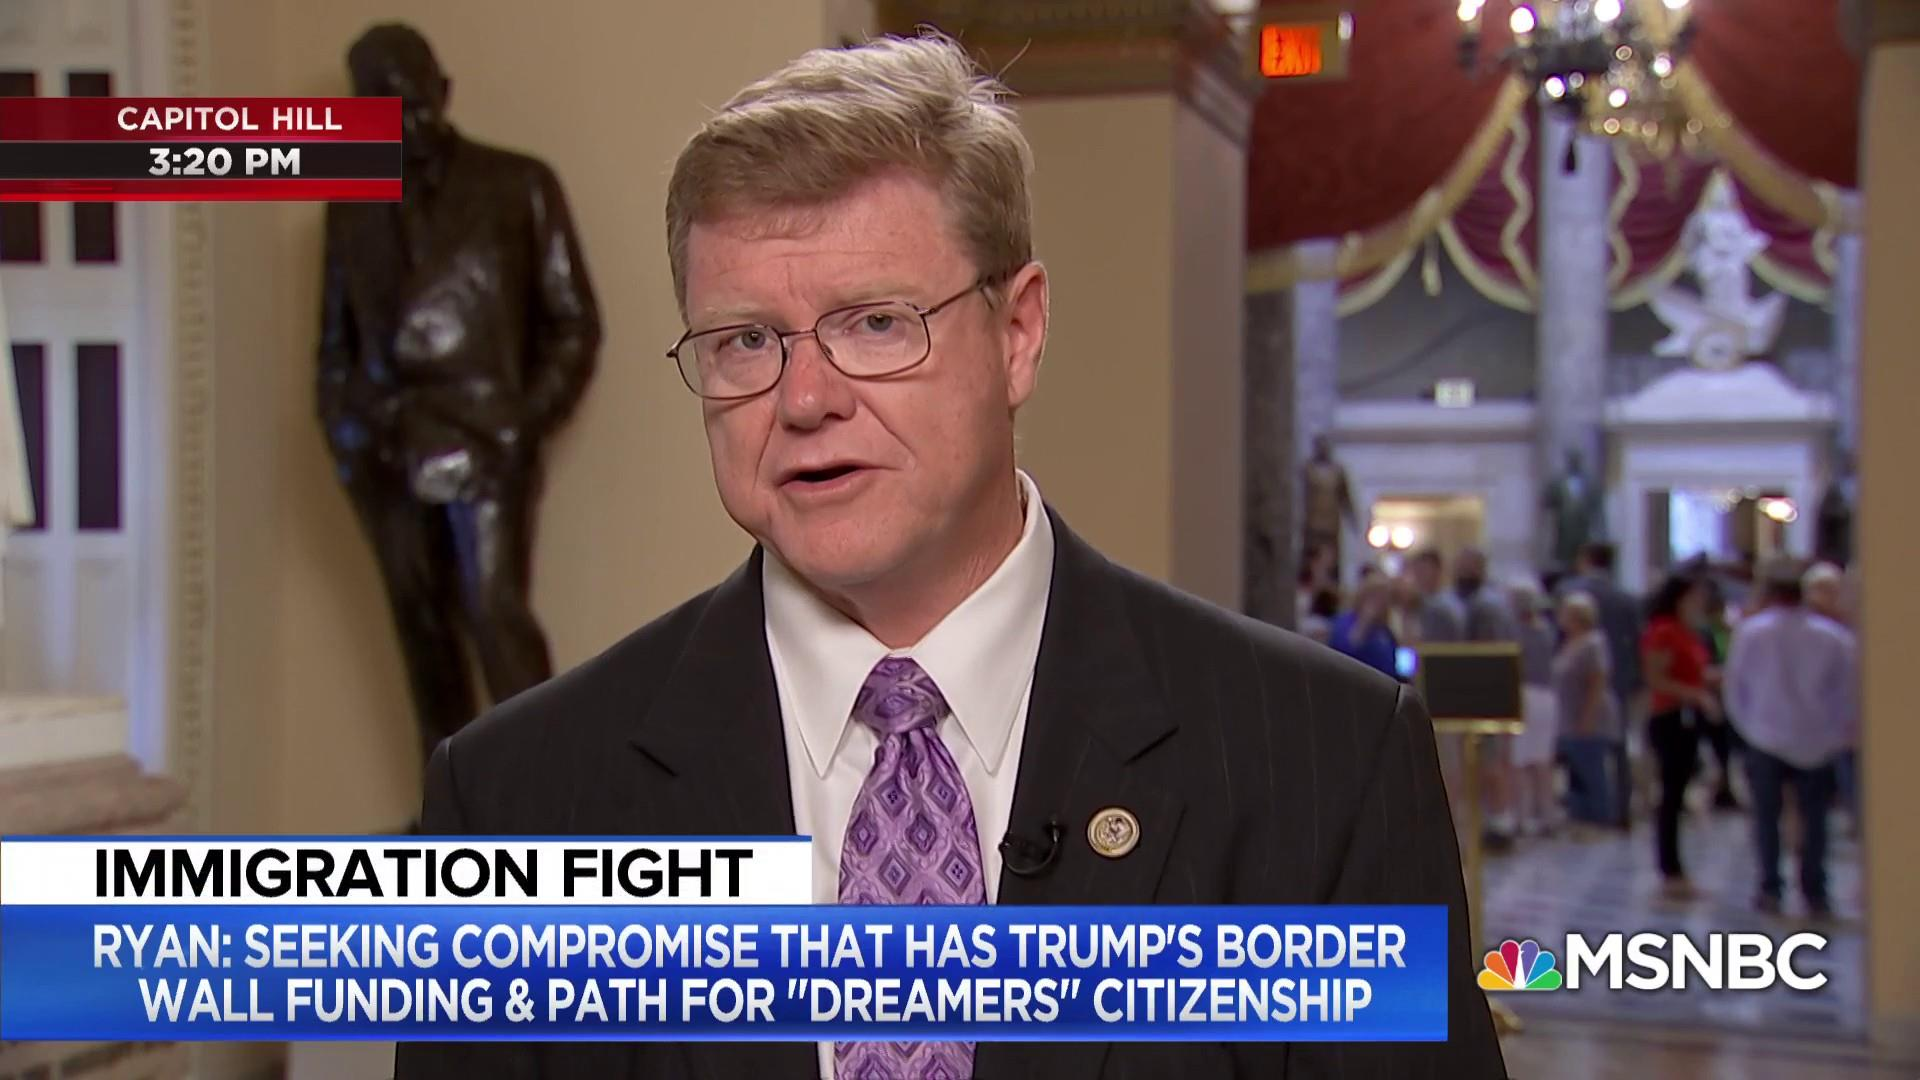 GOP Rep. Amodei on immigration legislation: Put something on the floor